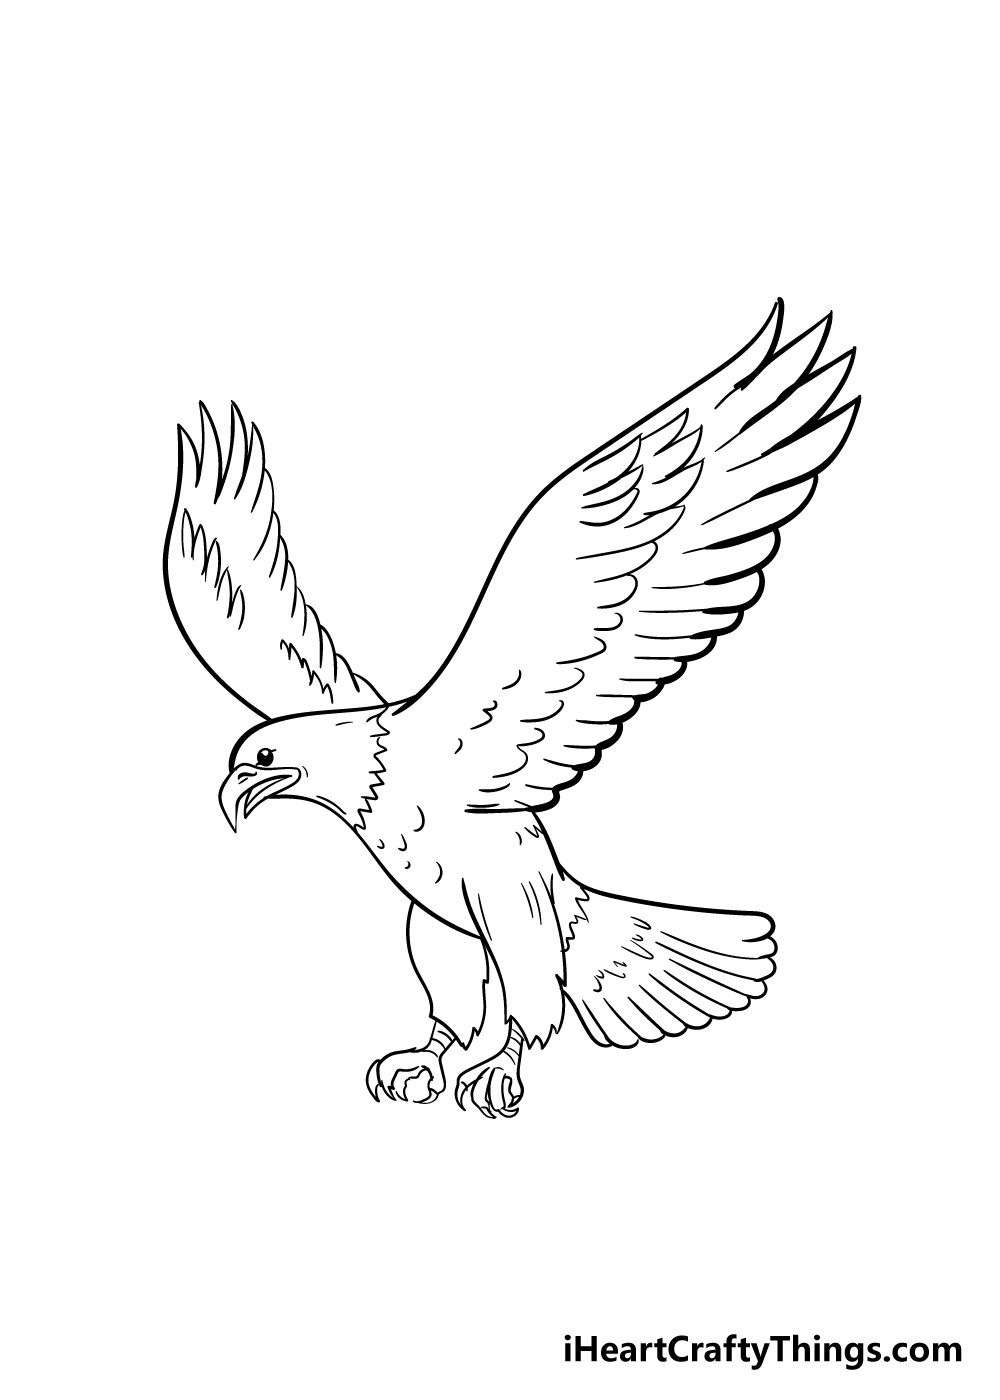 eagle drawing step 6